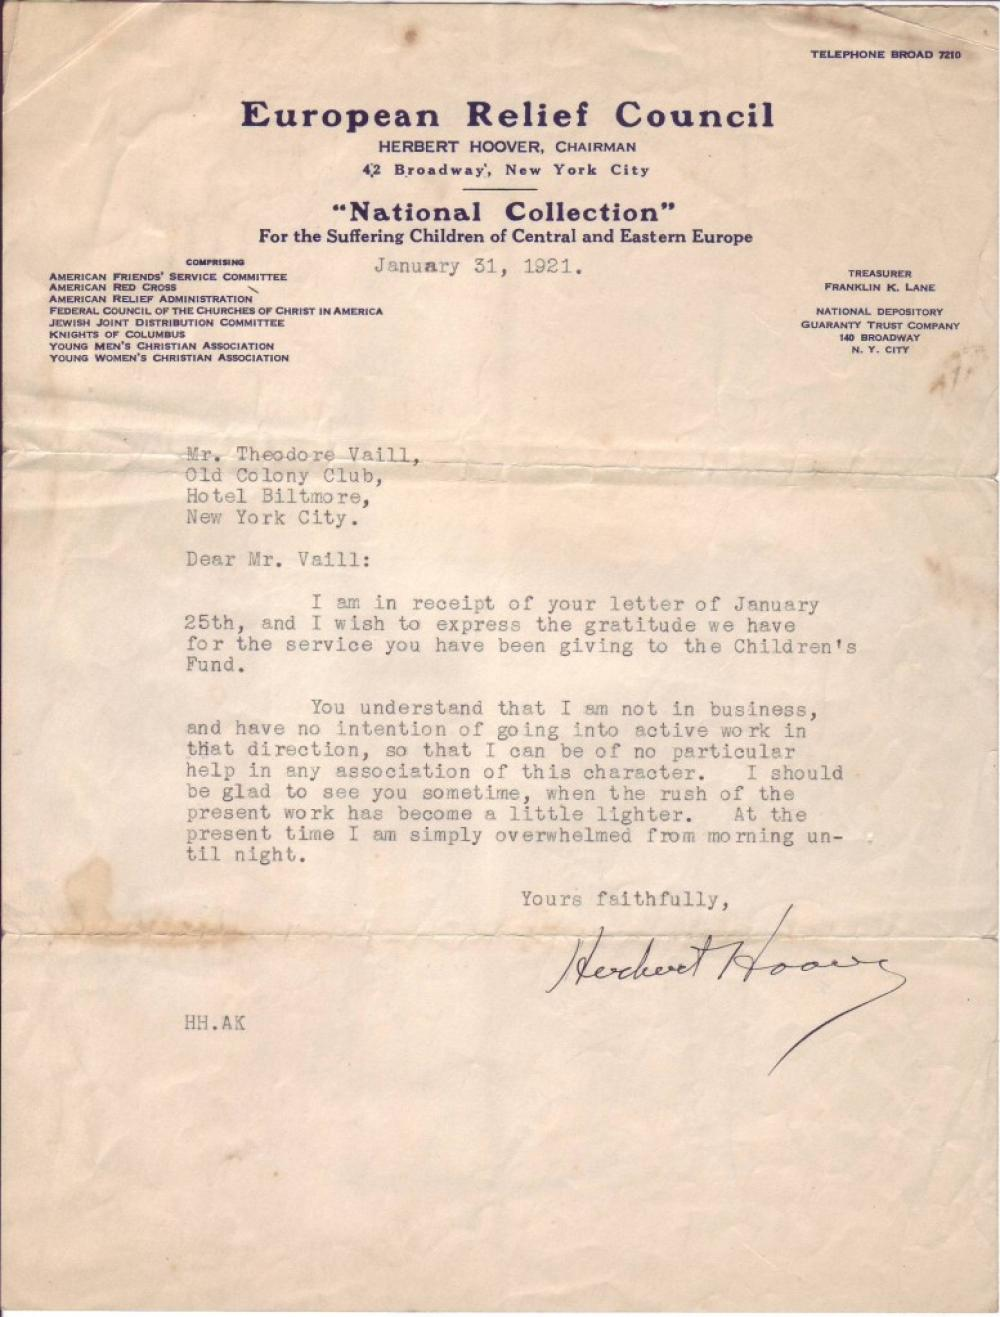 HOOVER, HERBERT. Typed Letter Signed, as Chairman of the European Relief Council,